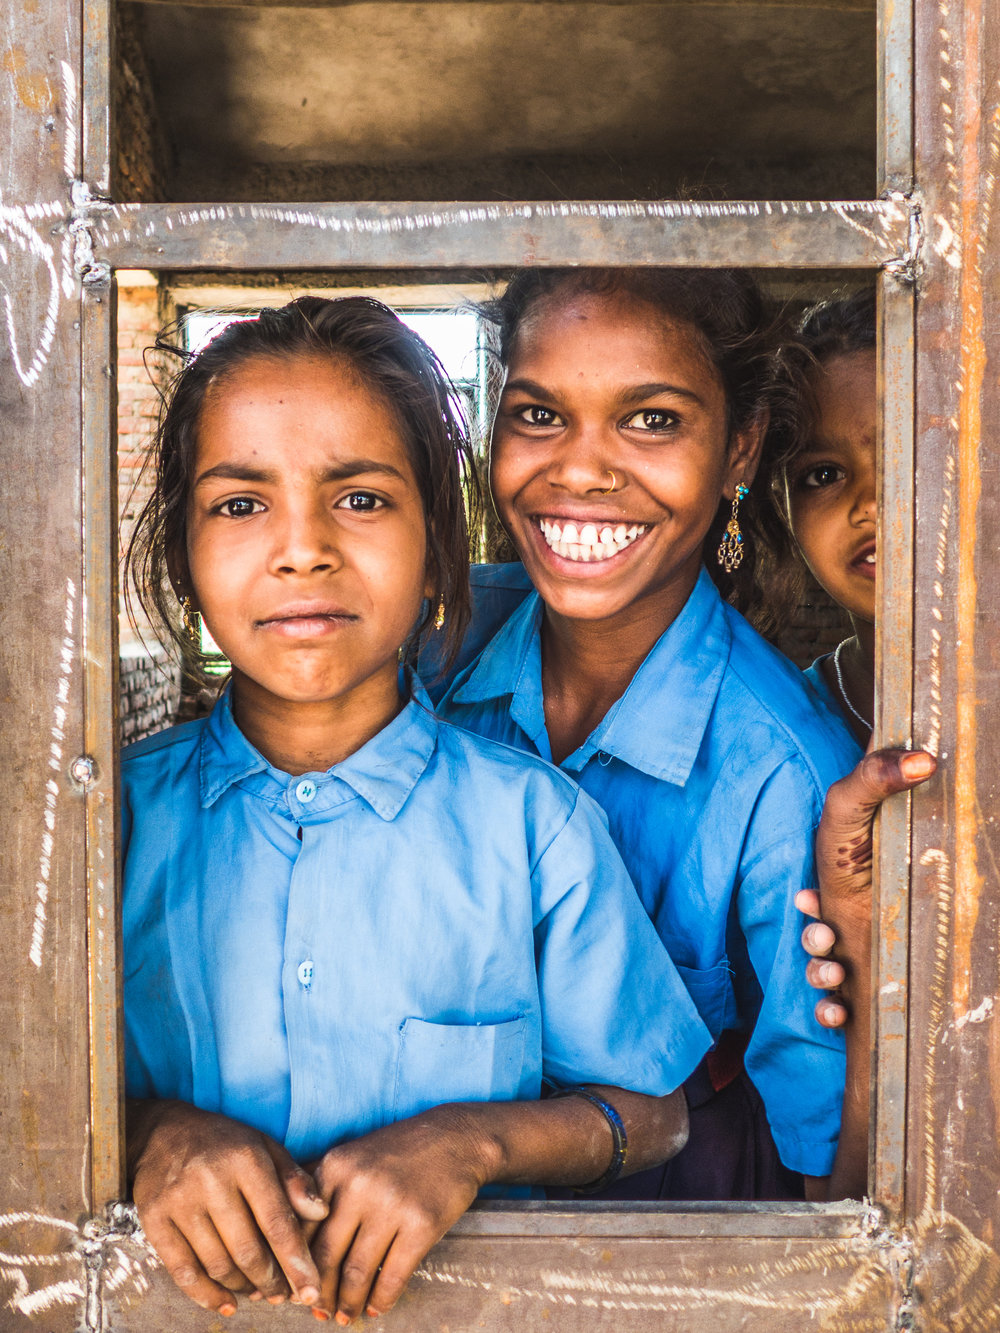 students in rural Rajasthan India standing by watching their community come together to help build a new school to expand the learning opportunities of girls in the community.